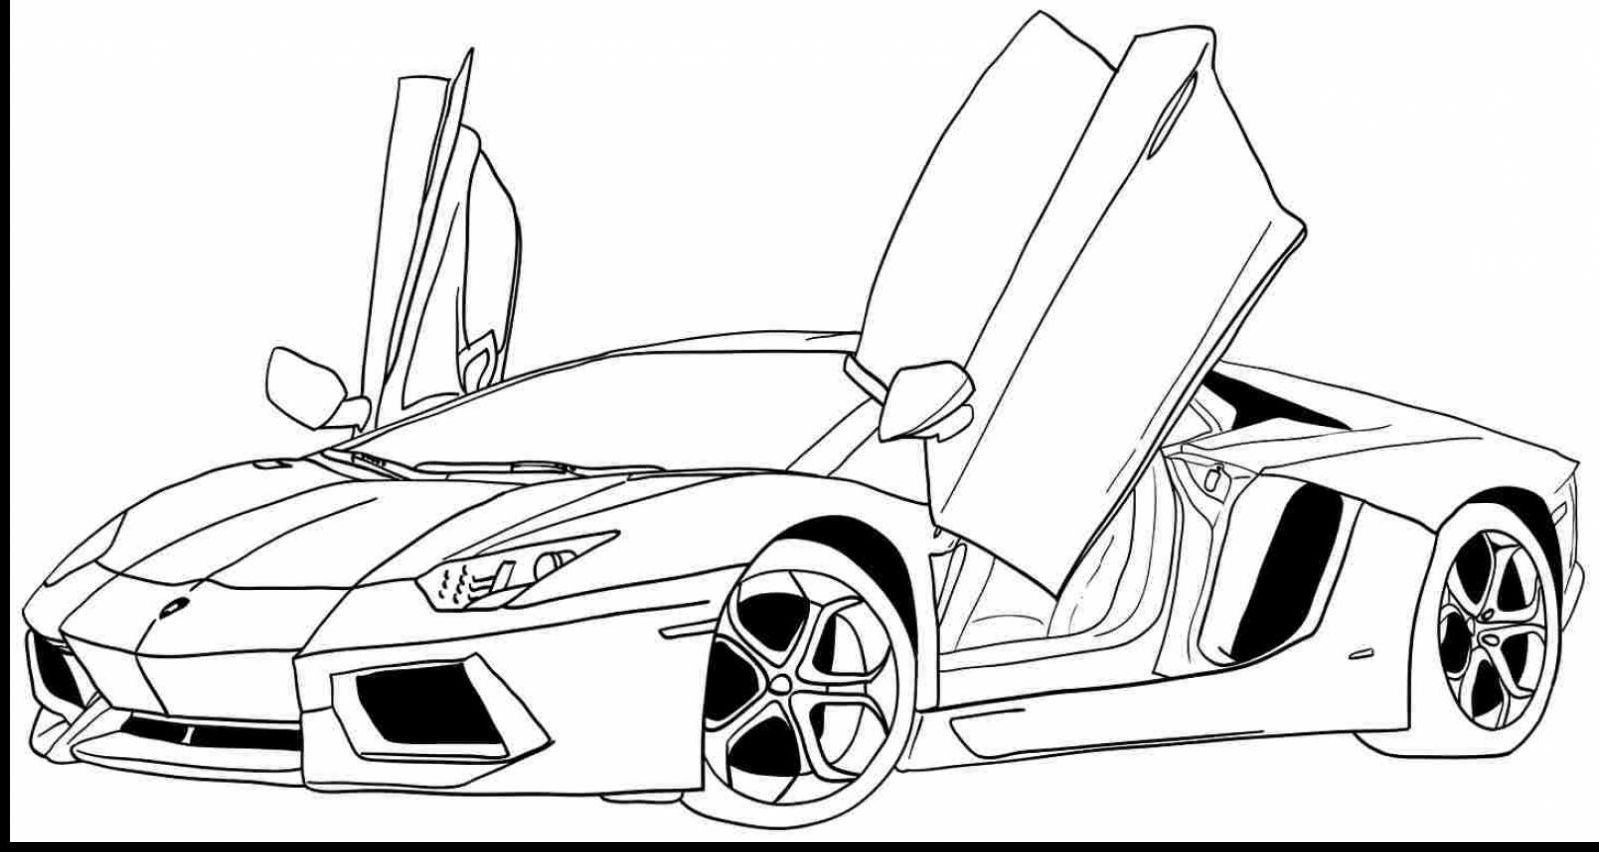 Sports Car Coloring Pages  Sports coloring pages, Race car